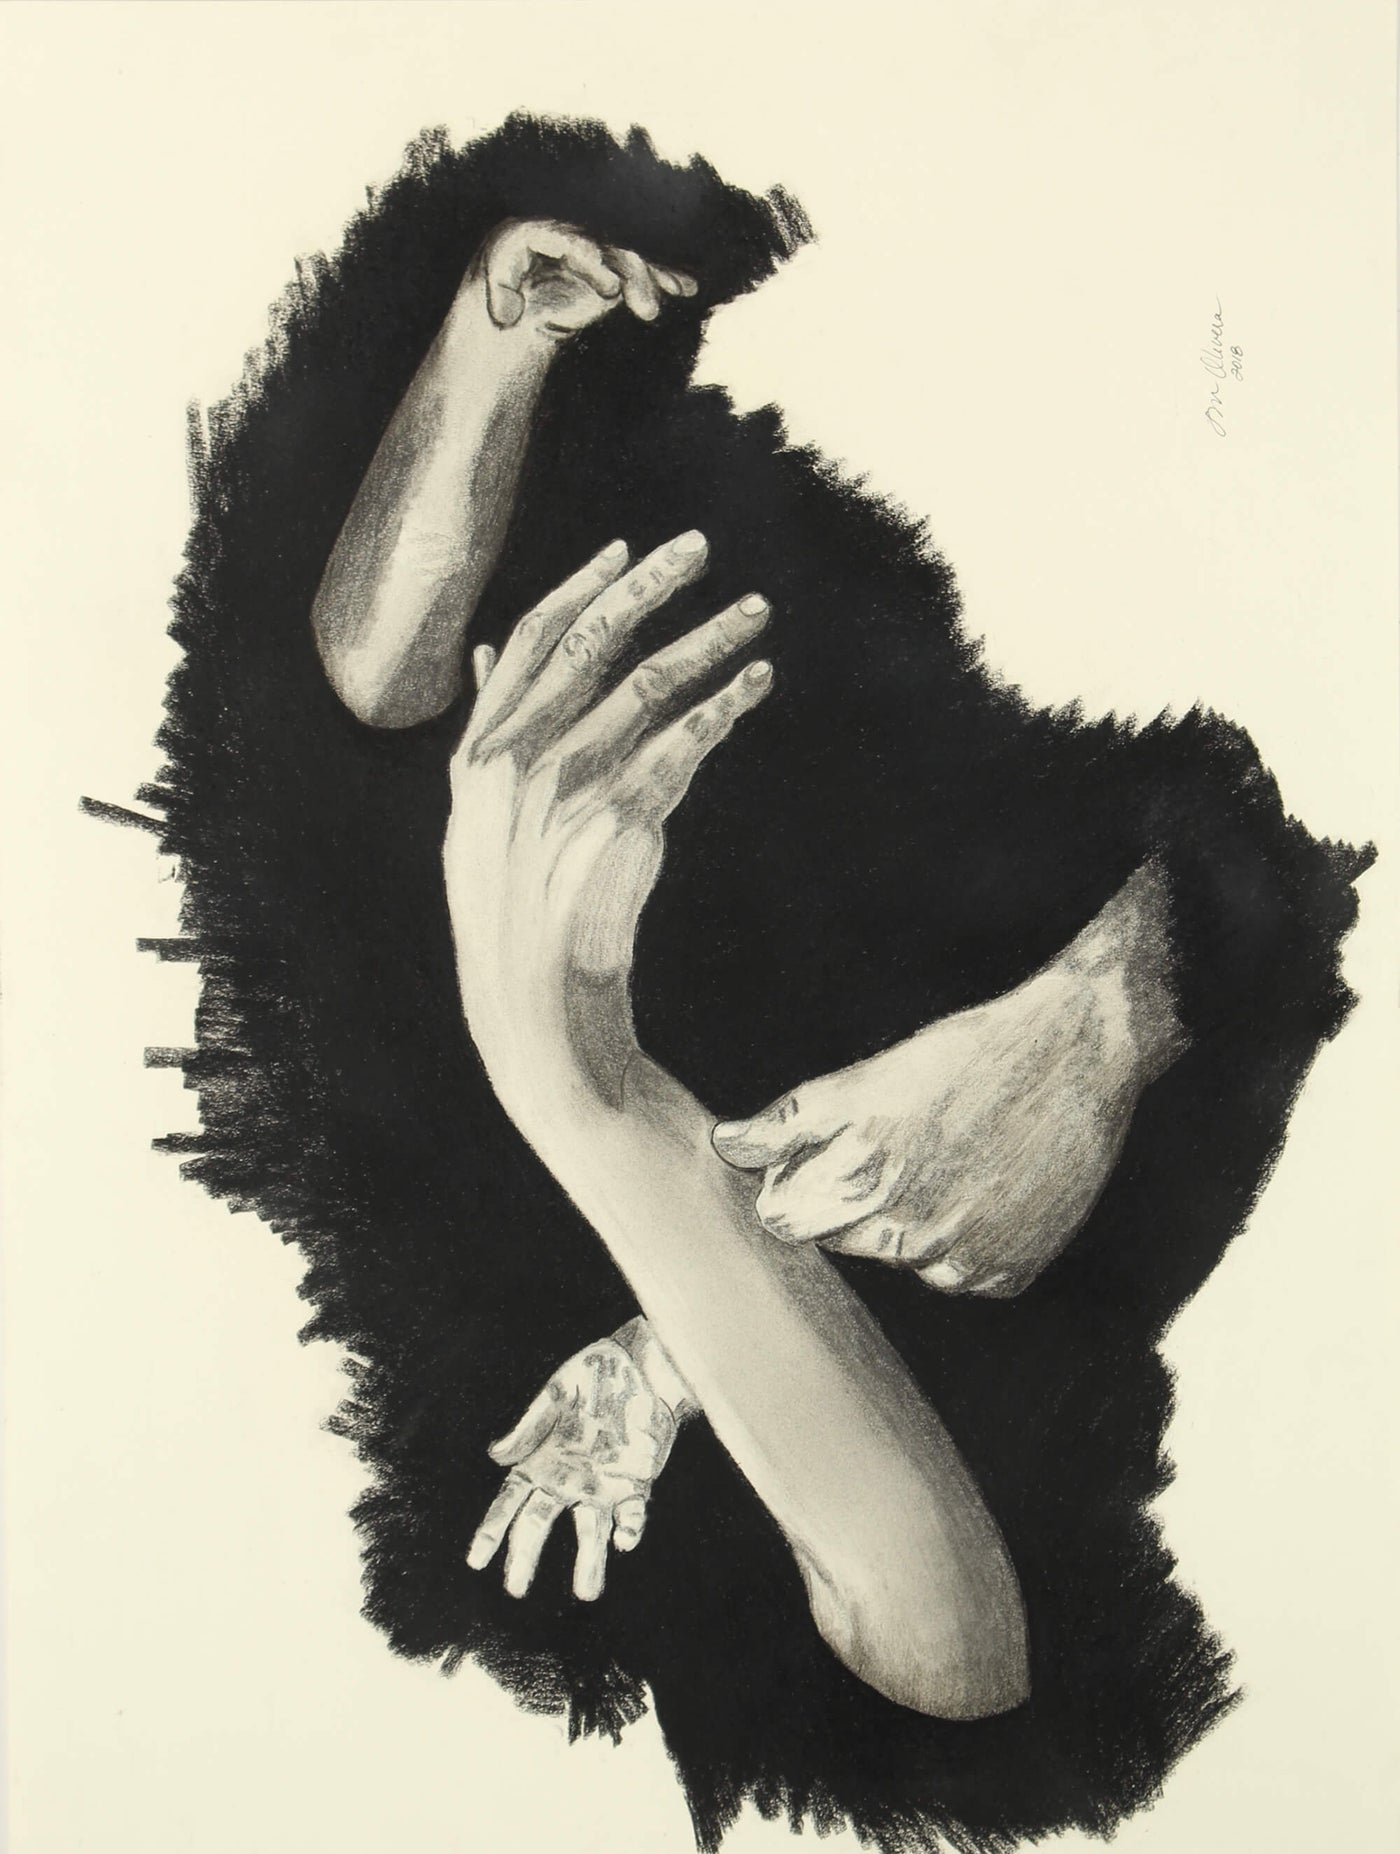 Graphite and compressed carbon drawing of hands protruding from a black hole on a wall by Susan Olivera